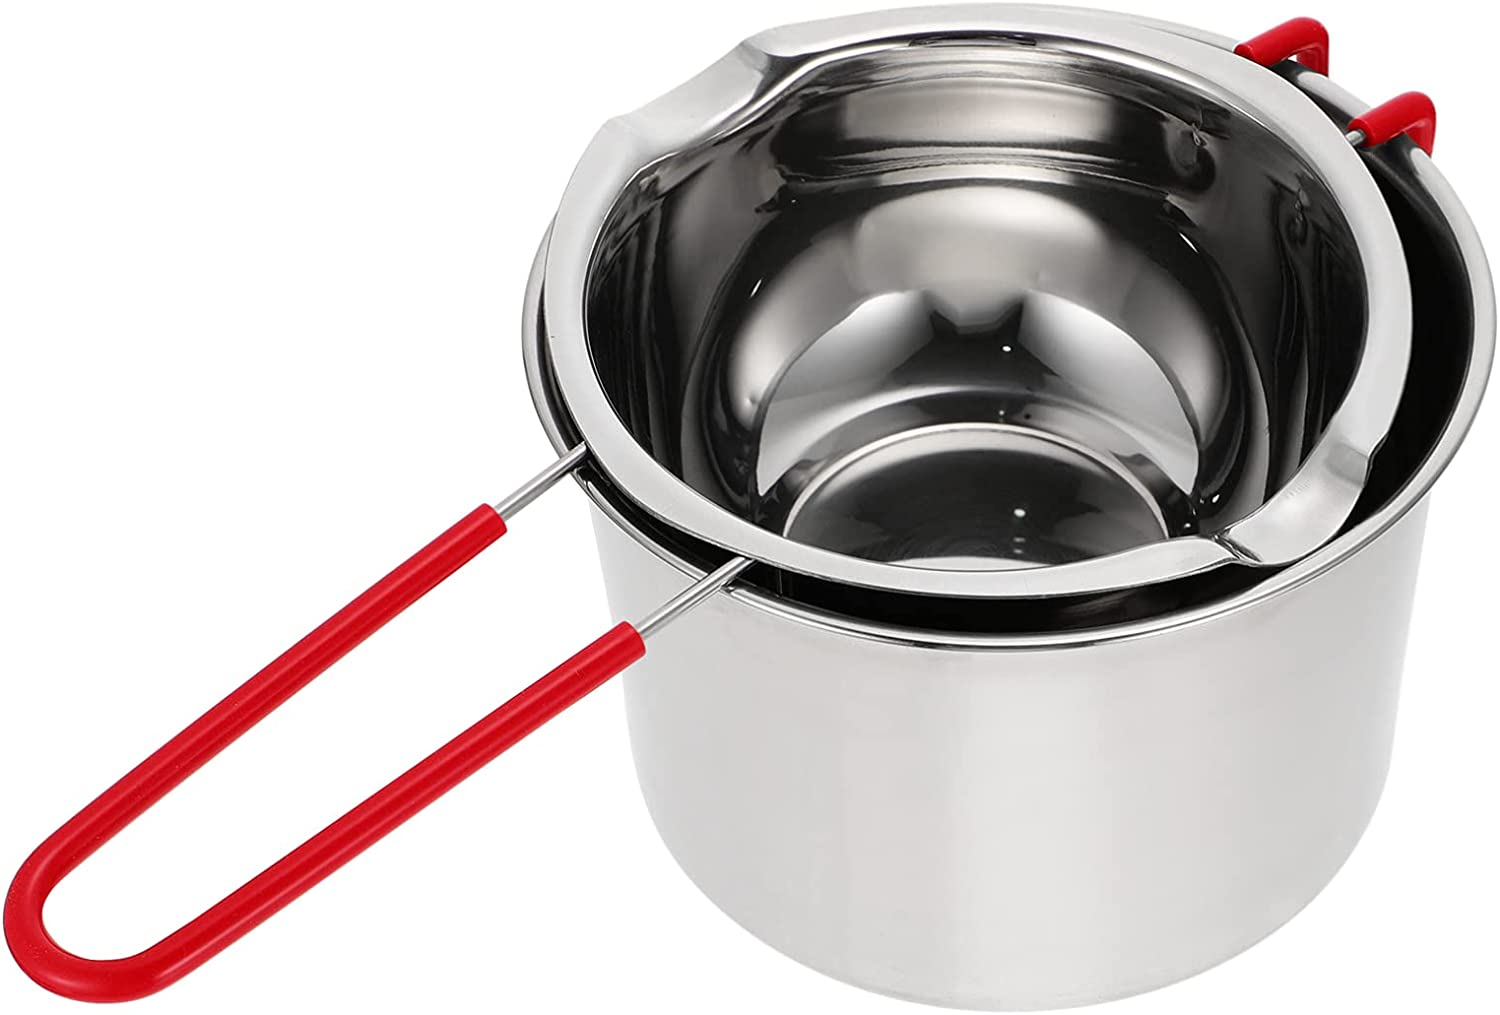 DOITOOL 600ml Melting Super beauty product restock quality top Pot Stainless Boiler Store Steel Double with